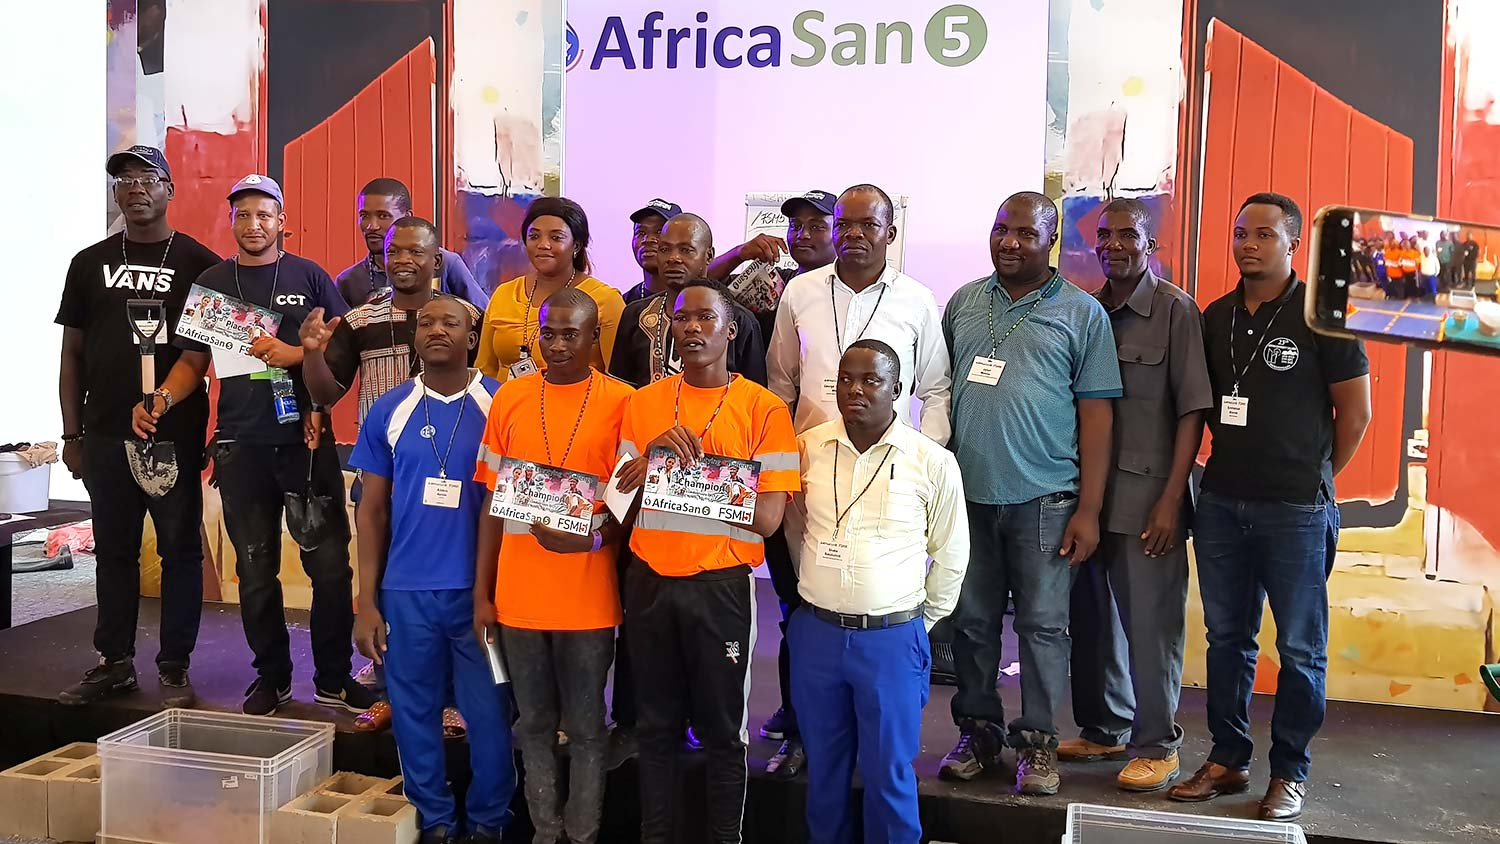 FSM5/AfricaSan5: Winners of the Pit Latrine Emptying Challenge